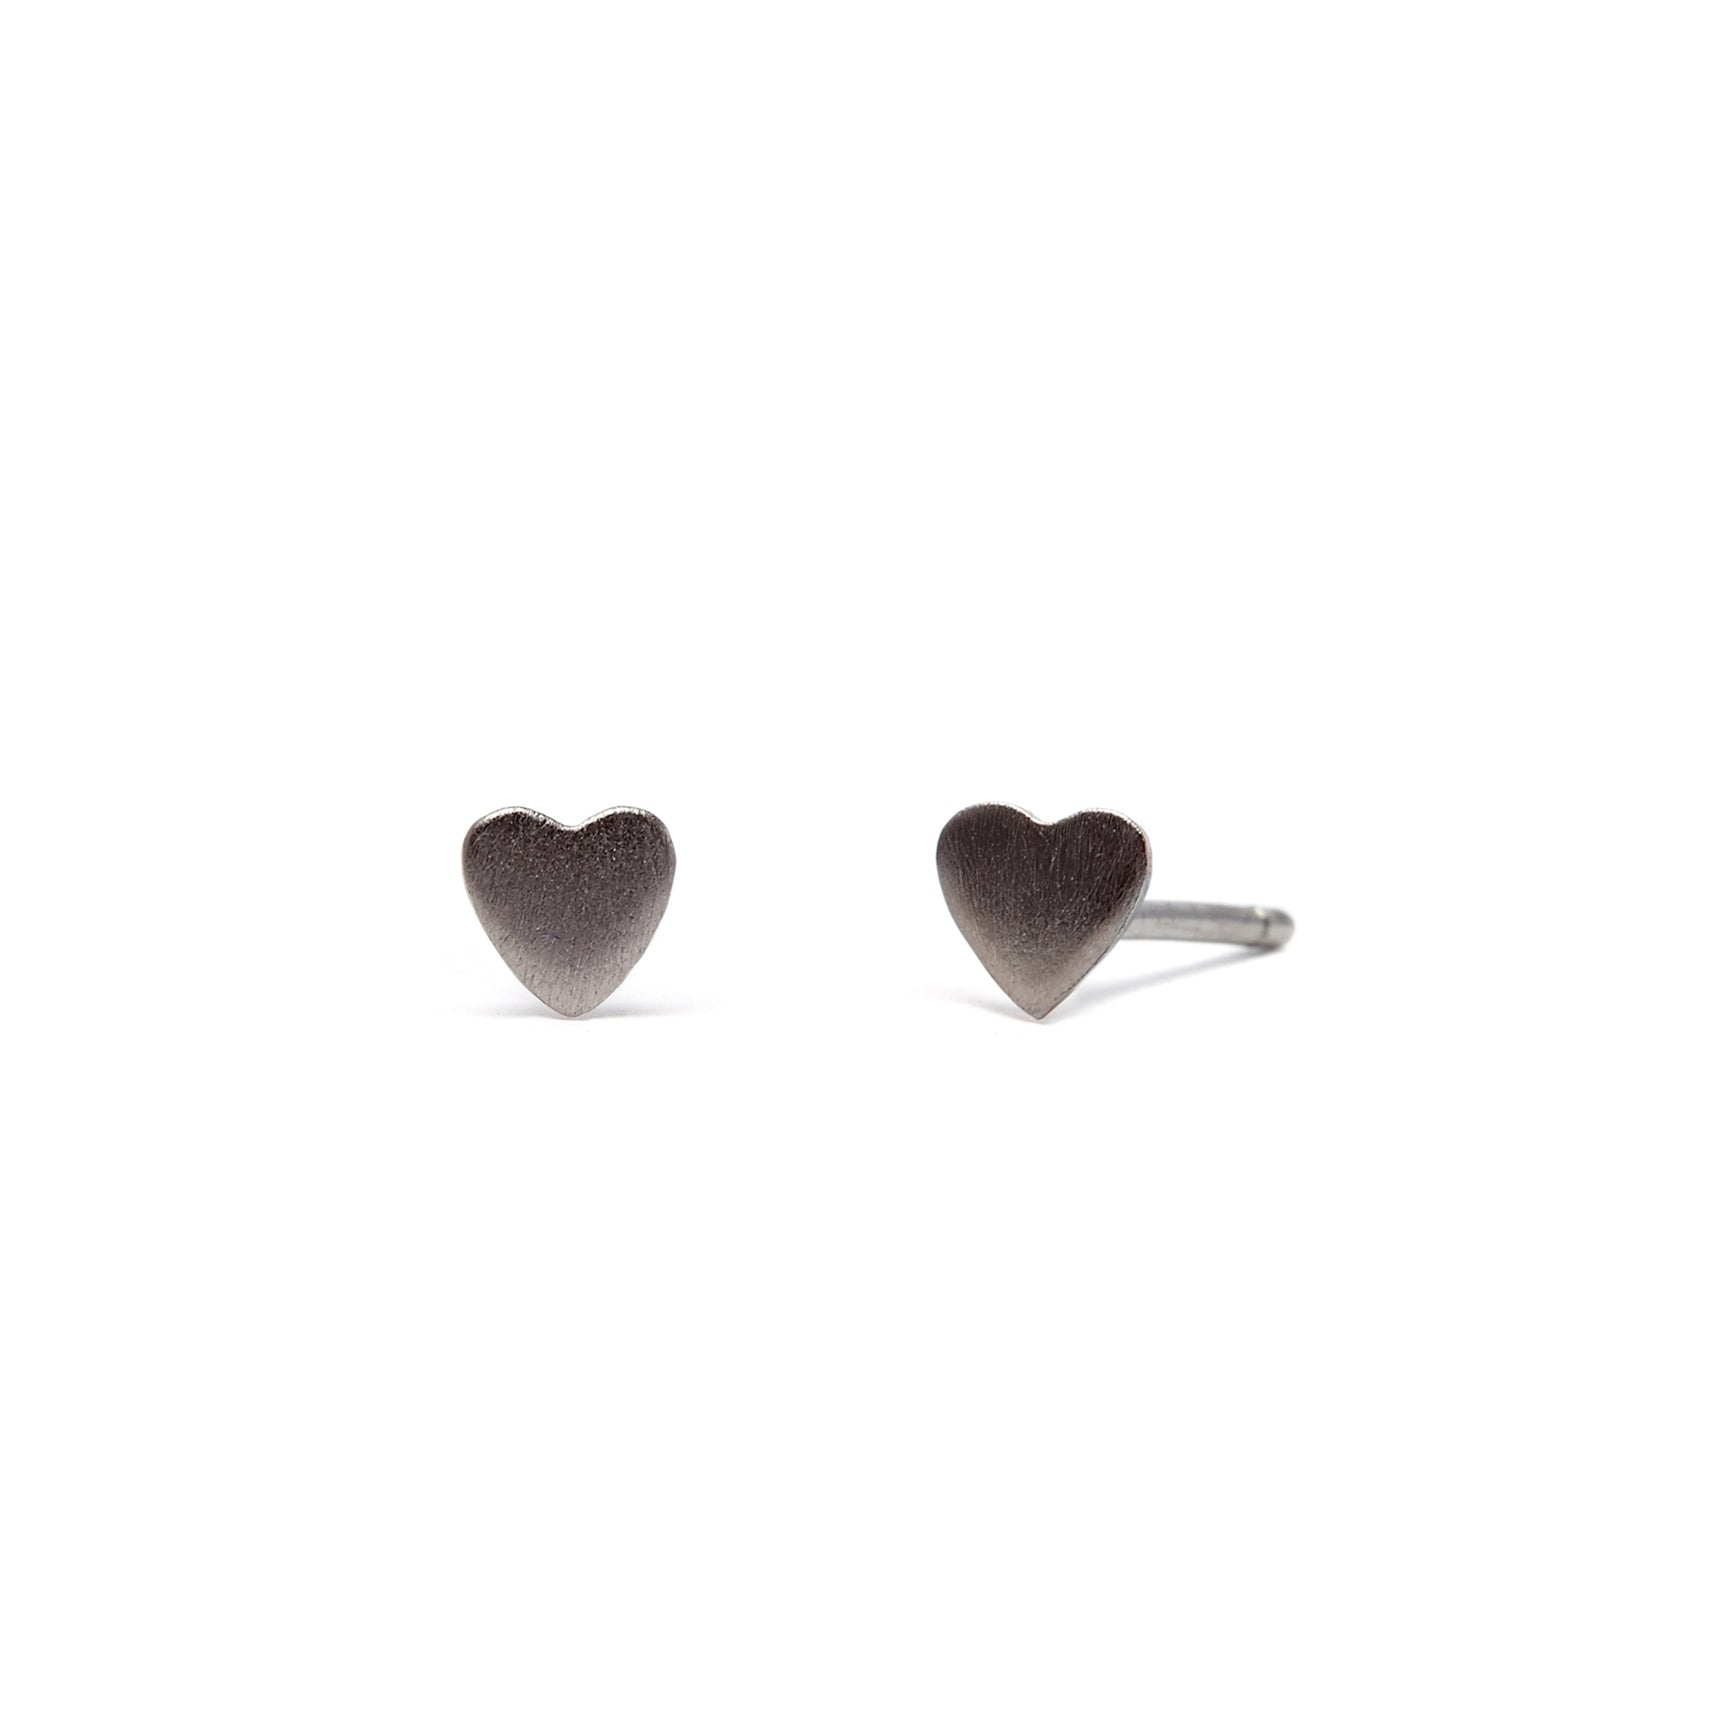 Love Heart - Earrings - Black Rhodium Satin - Stud - Pair - Louise Varberg Jewellery